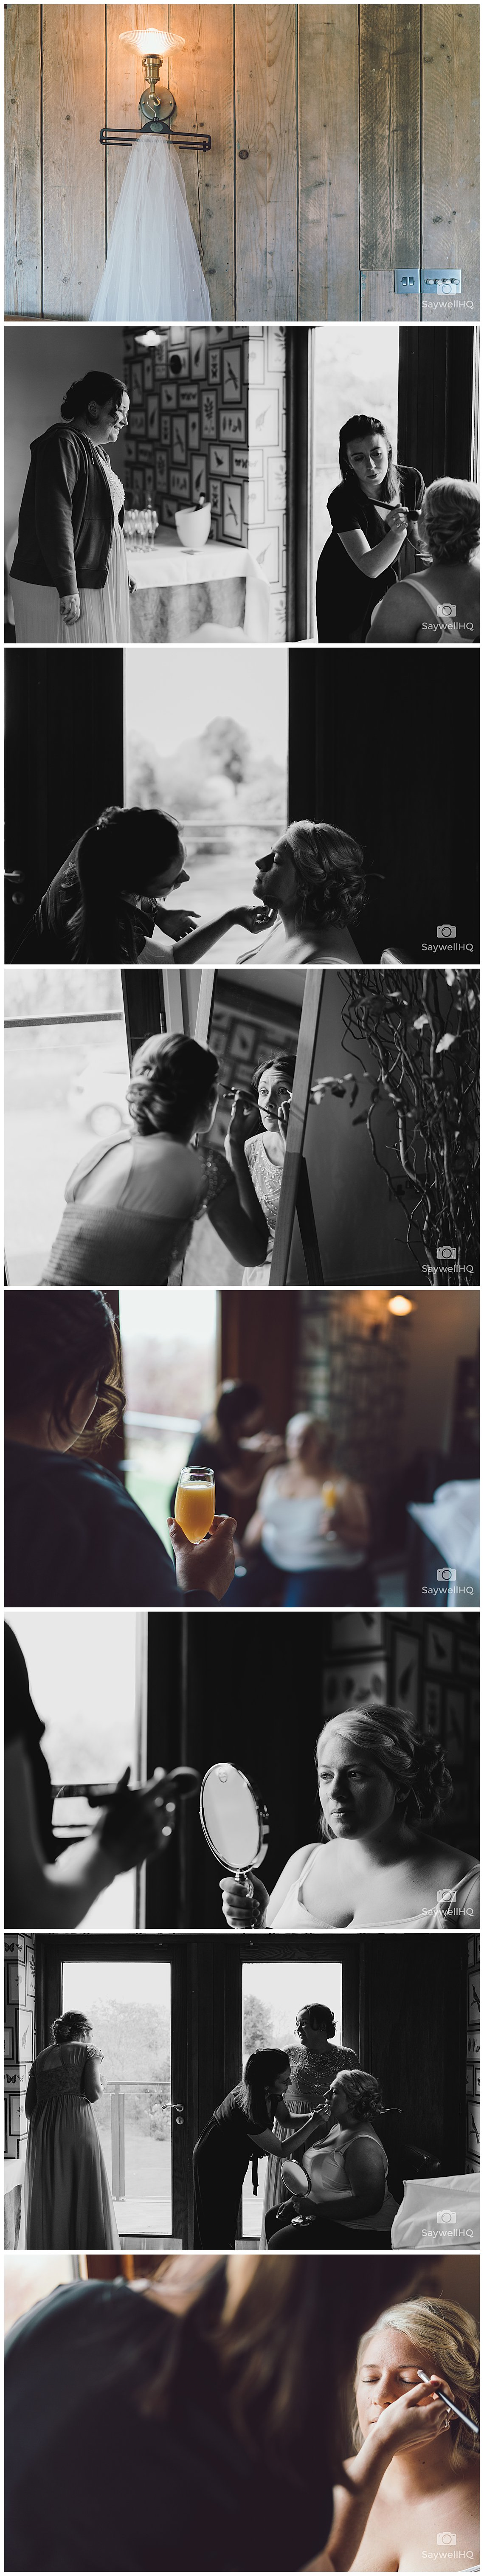 Wedding photography at The Carriage Hall - Bride gets ready at carriage hall for her wedding